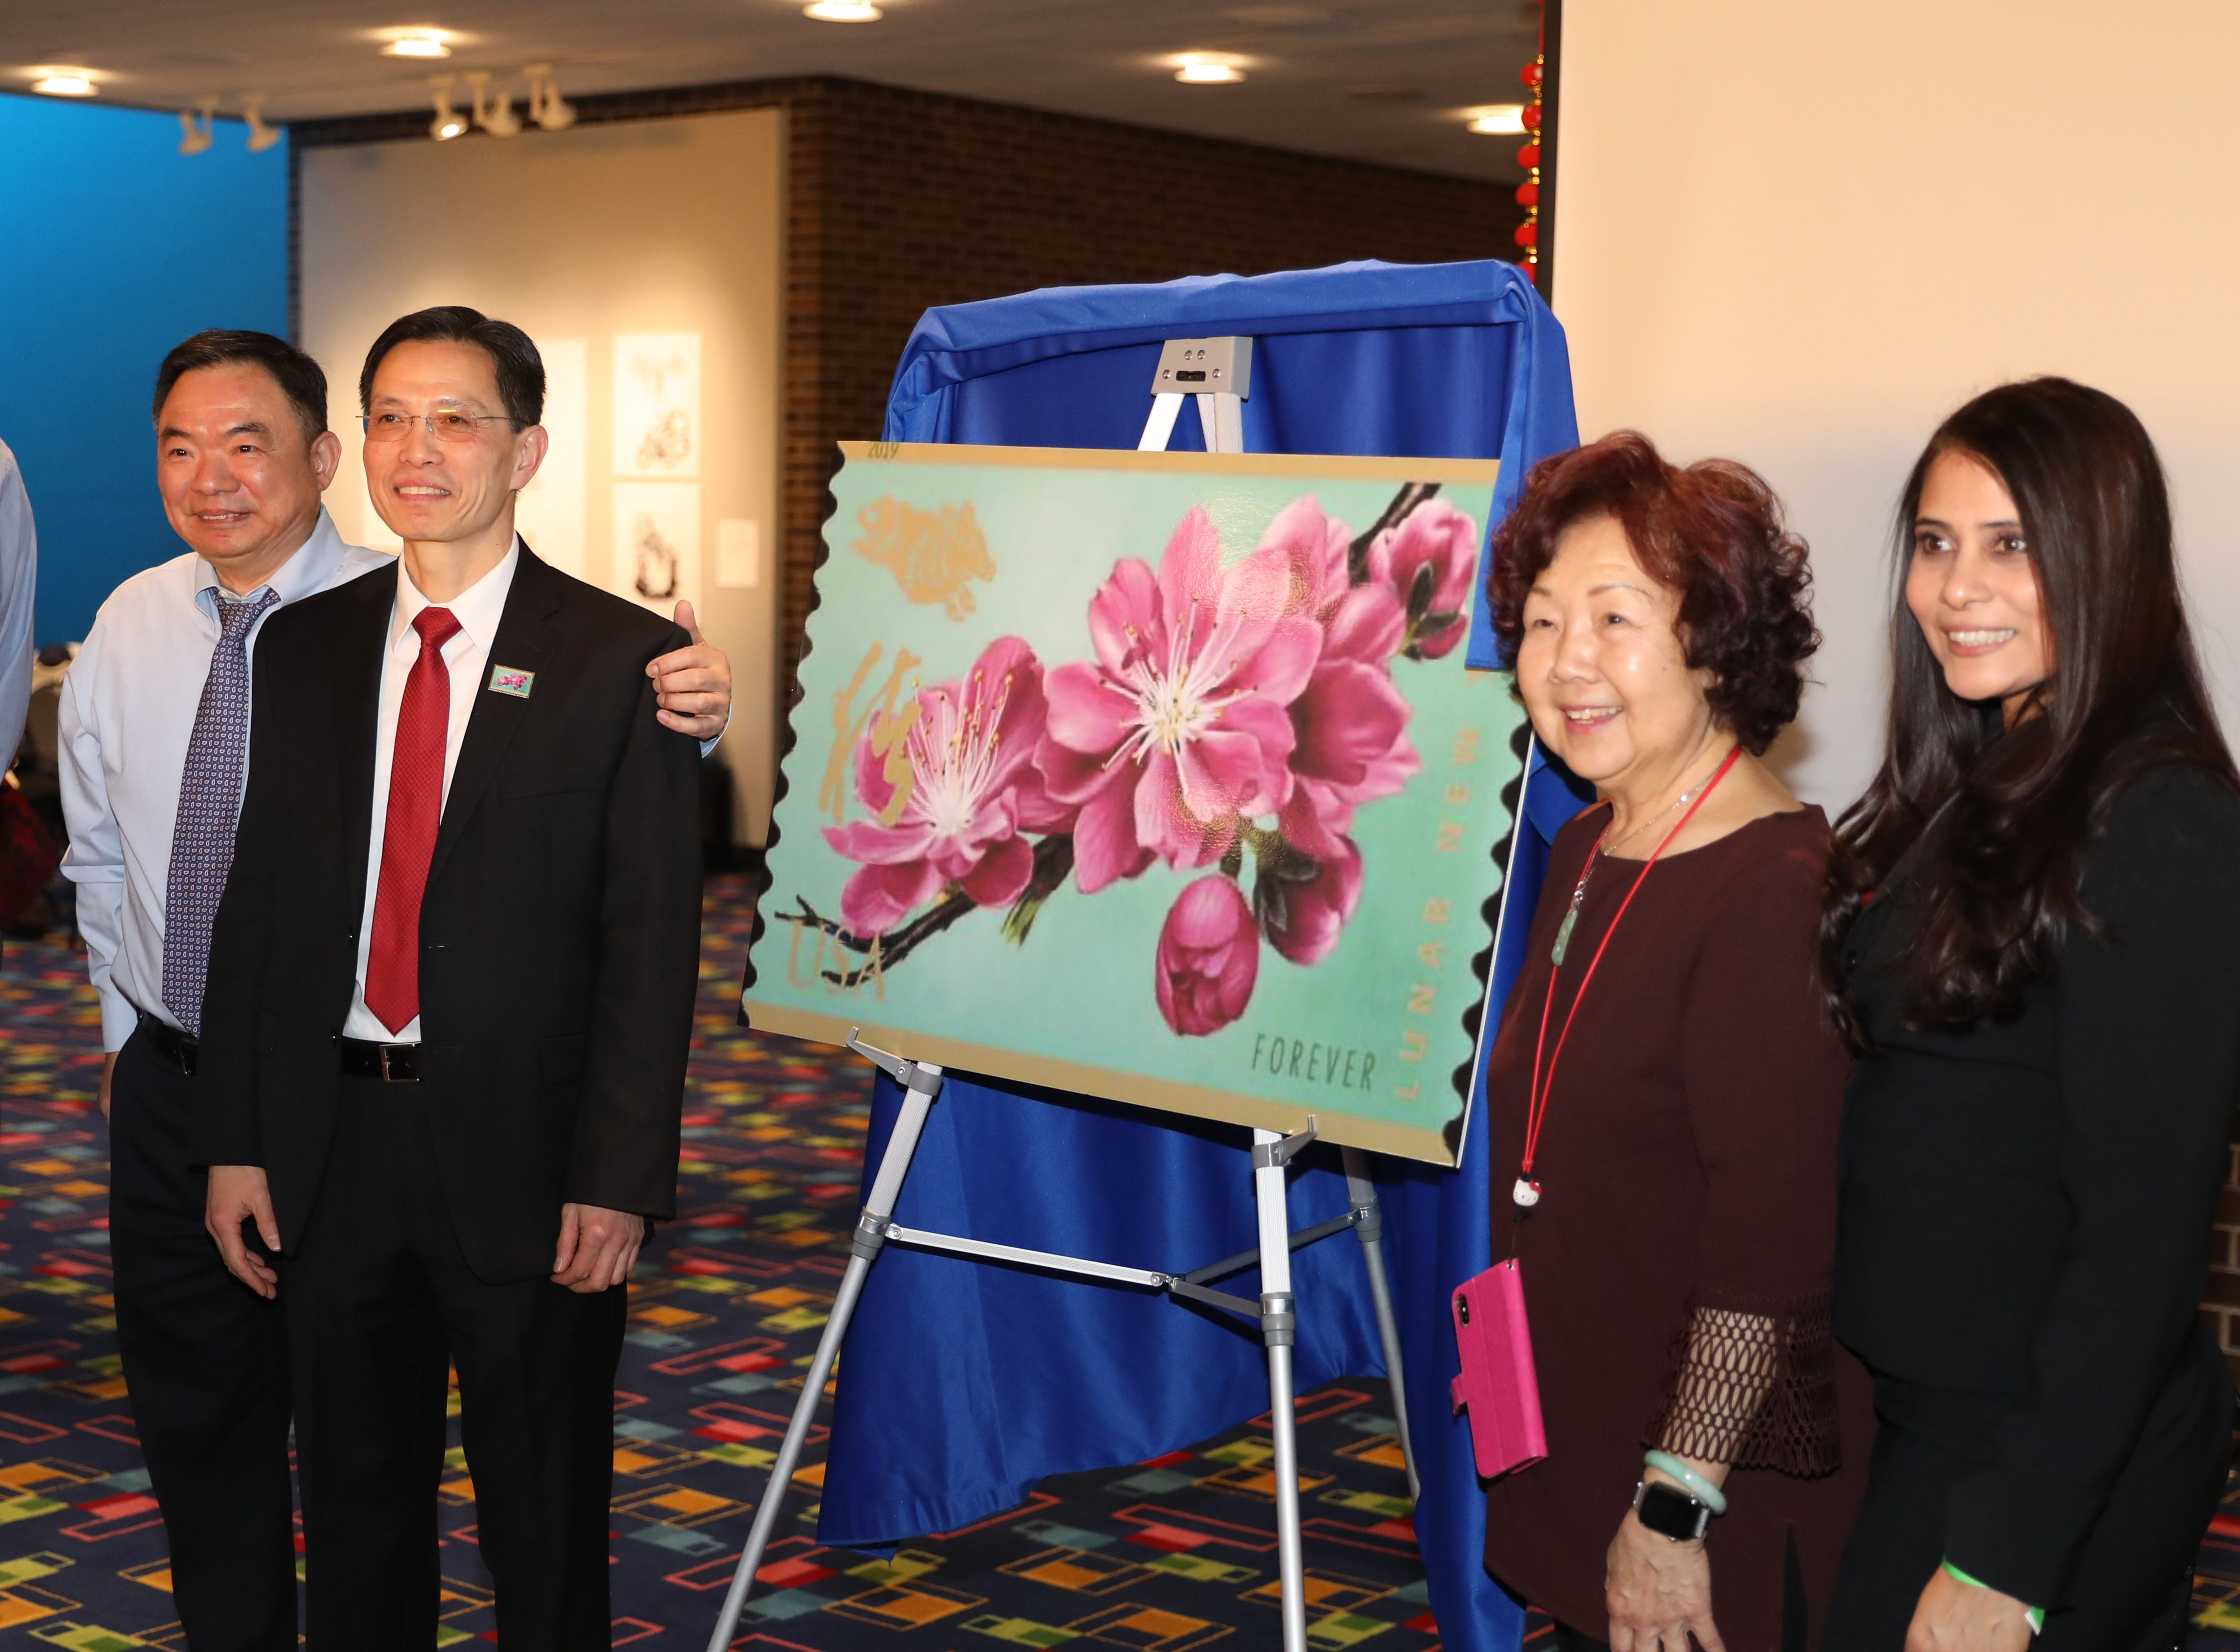 The 12th and final USPS postage stamp in this series celebrating the Chinese New Year, was unveiled during the 30th Chinese New Year Festival, the Year of the Pig, sponsored by WACA (Westchester Association of Chinese Americans), at The Performing Arts Center at Purchase College SUNY, Feb. 9, 2019.